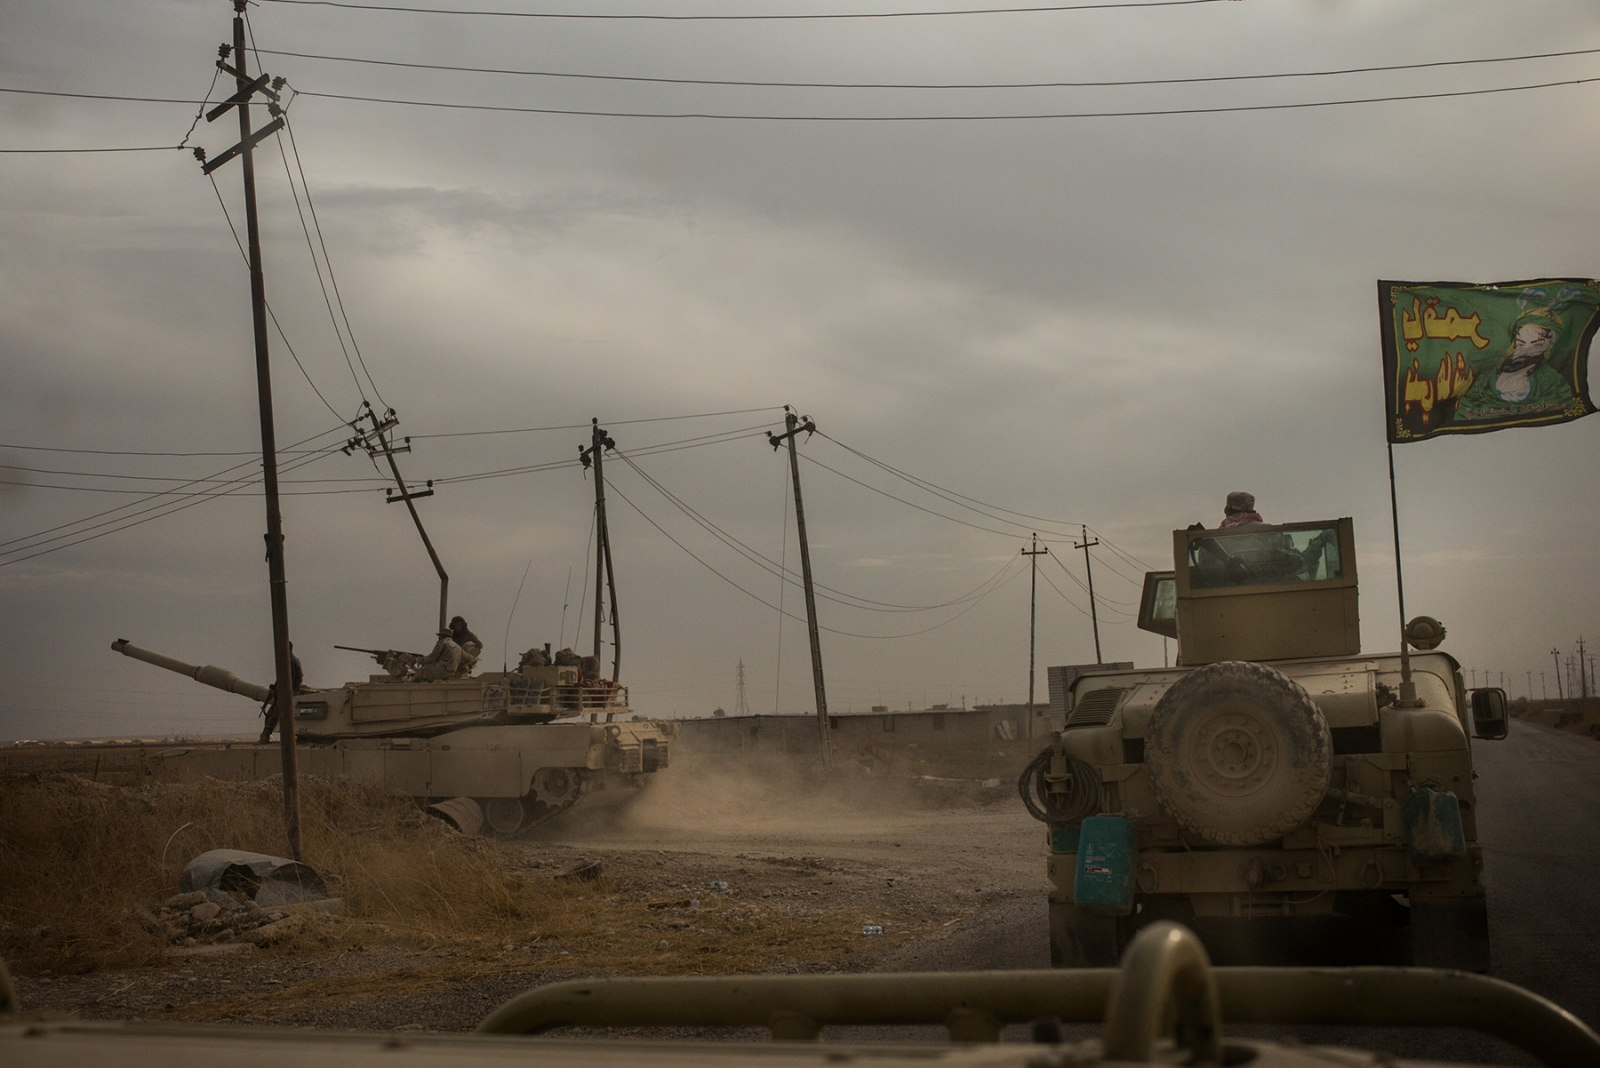 Fighters with the Popular Mobilization Units, who are predominantly Shia, drive in armored vehicles near Mosul, Iraq. November 2016.